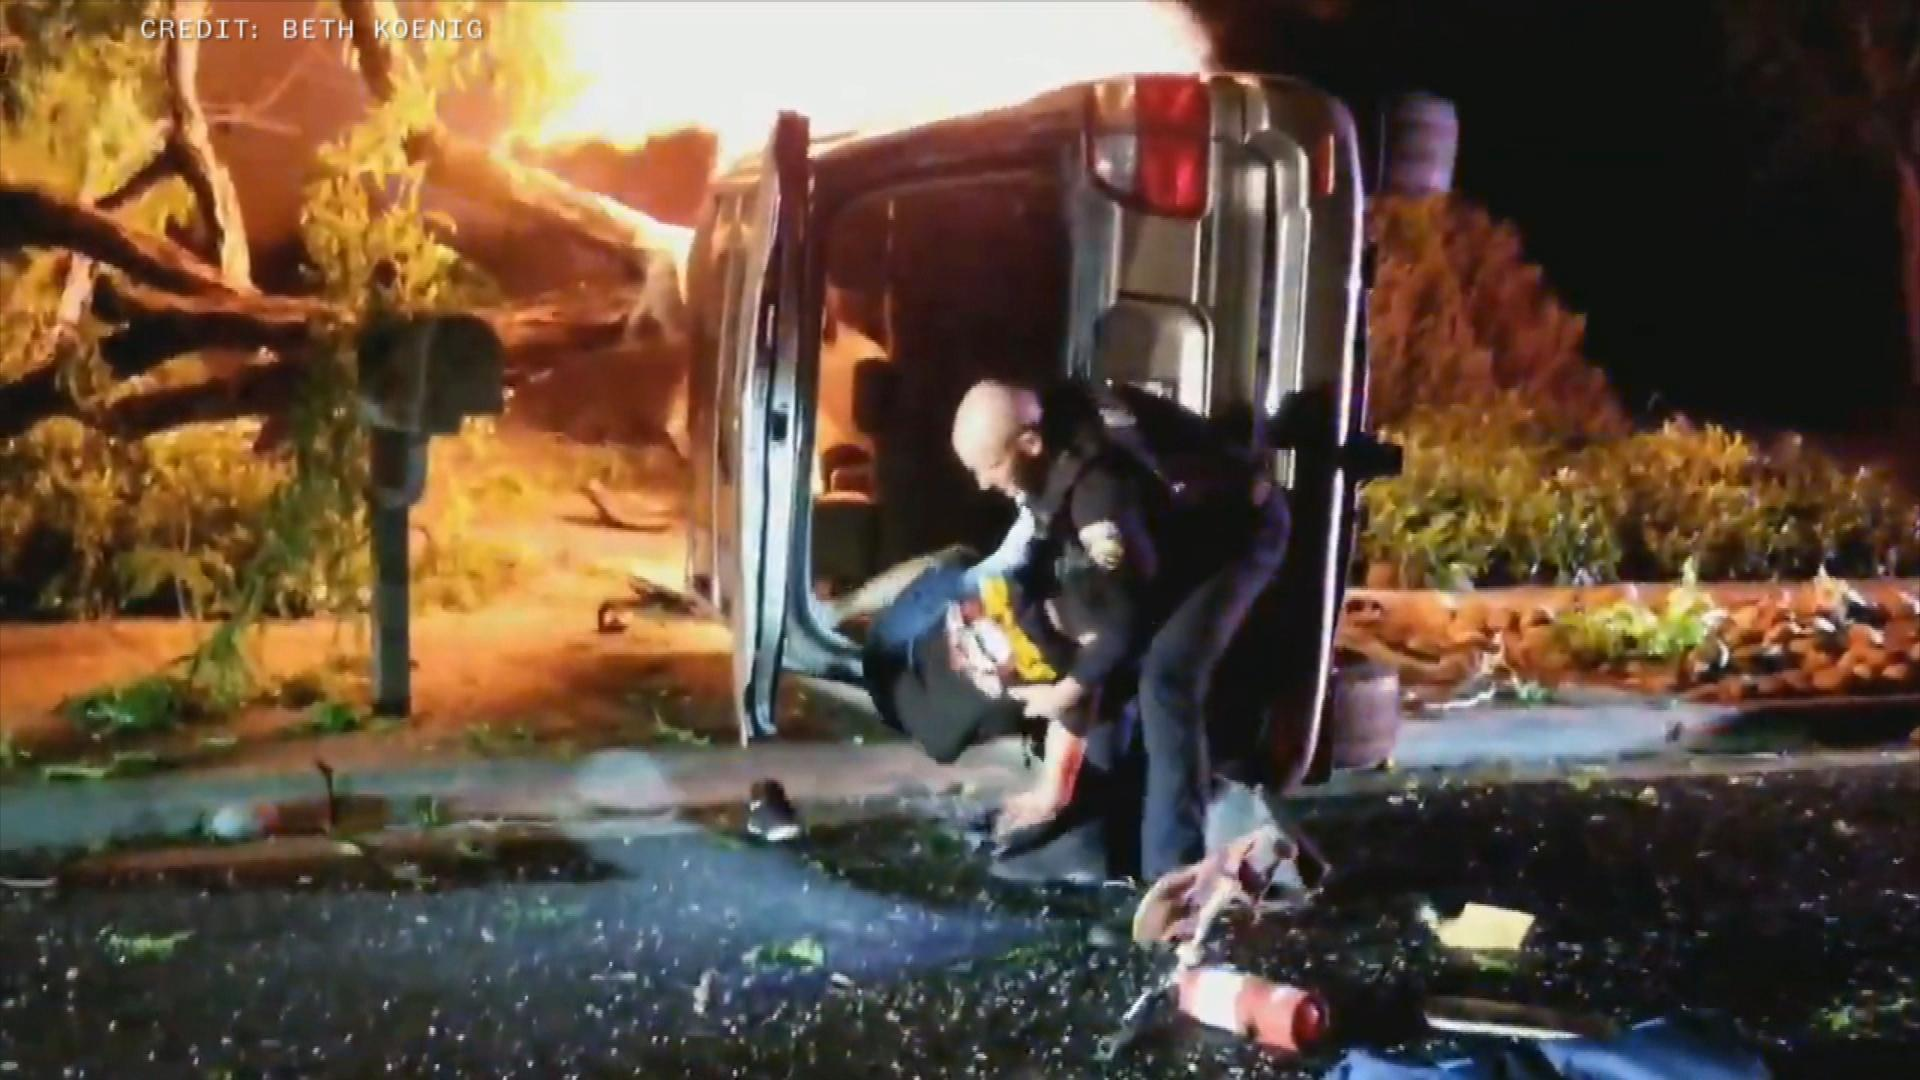 'We got to go!': Dramatic video shows California officer rescue driver from fiery crash